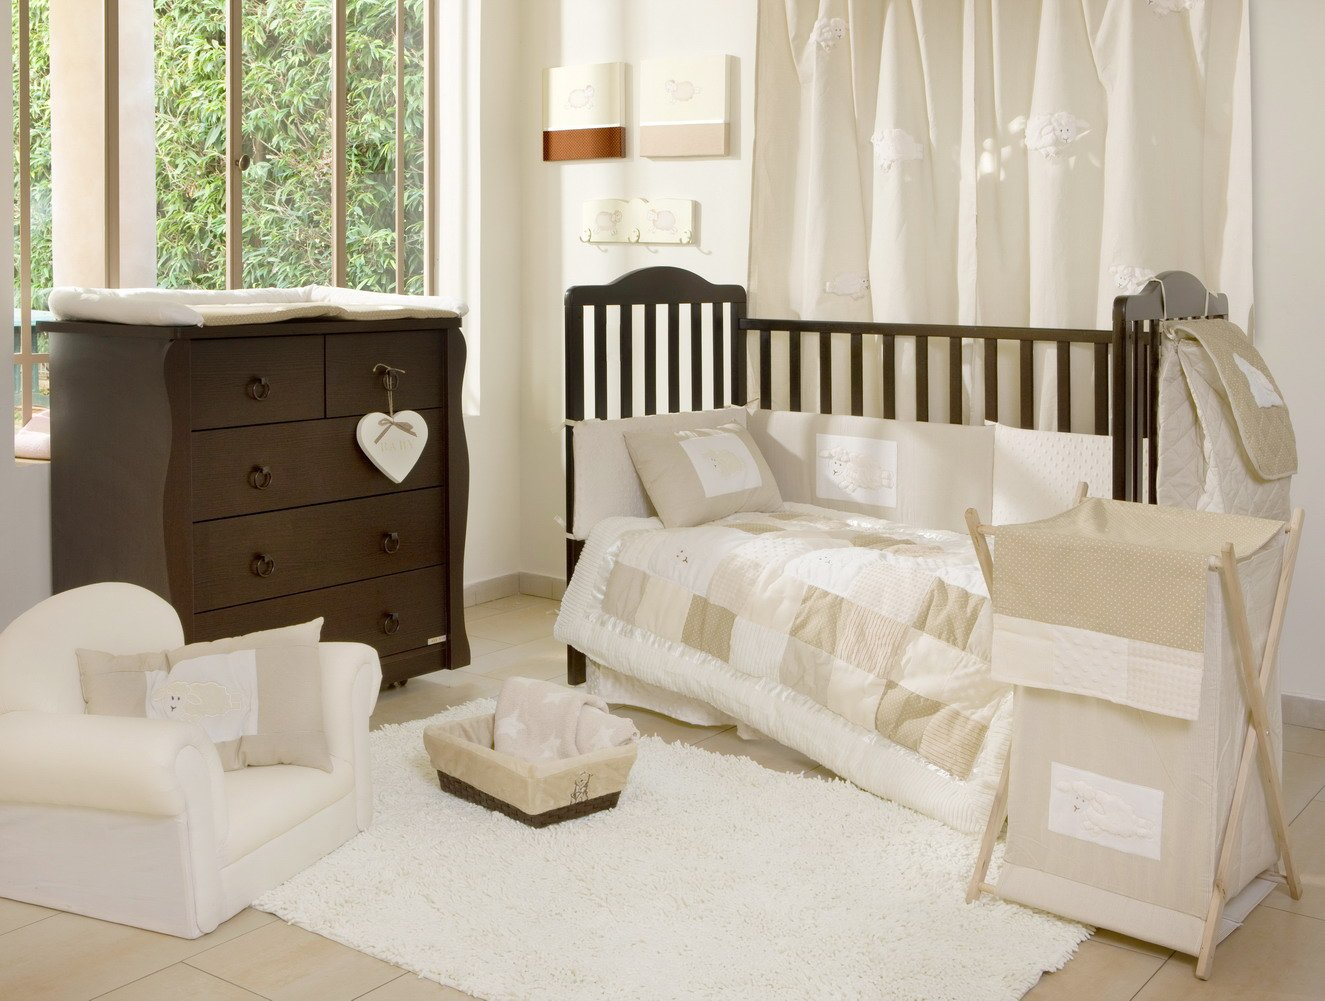 Cream Bedroom Decor: Beige, Cream And White Bedroom Decorating Ideas